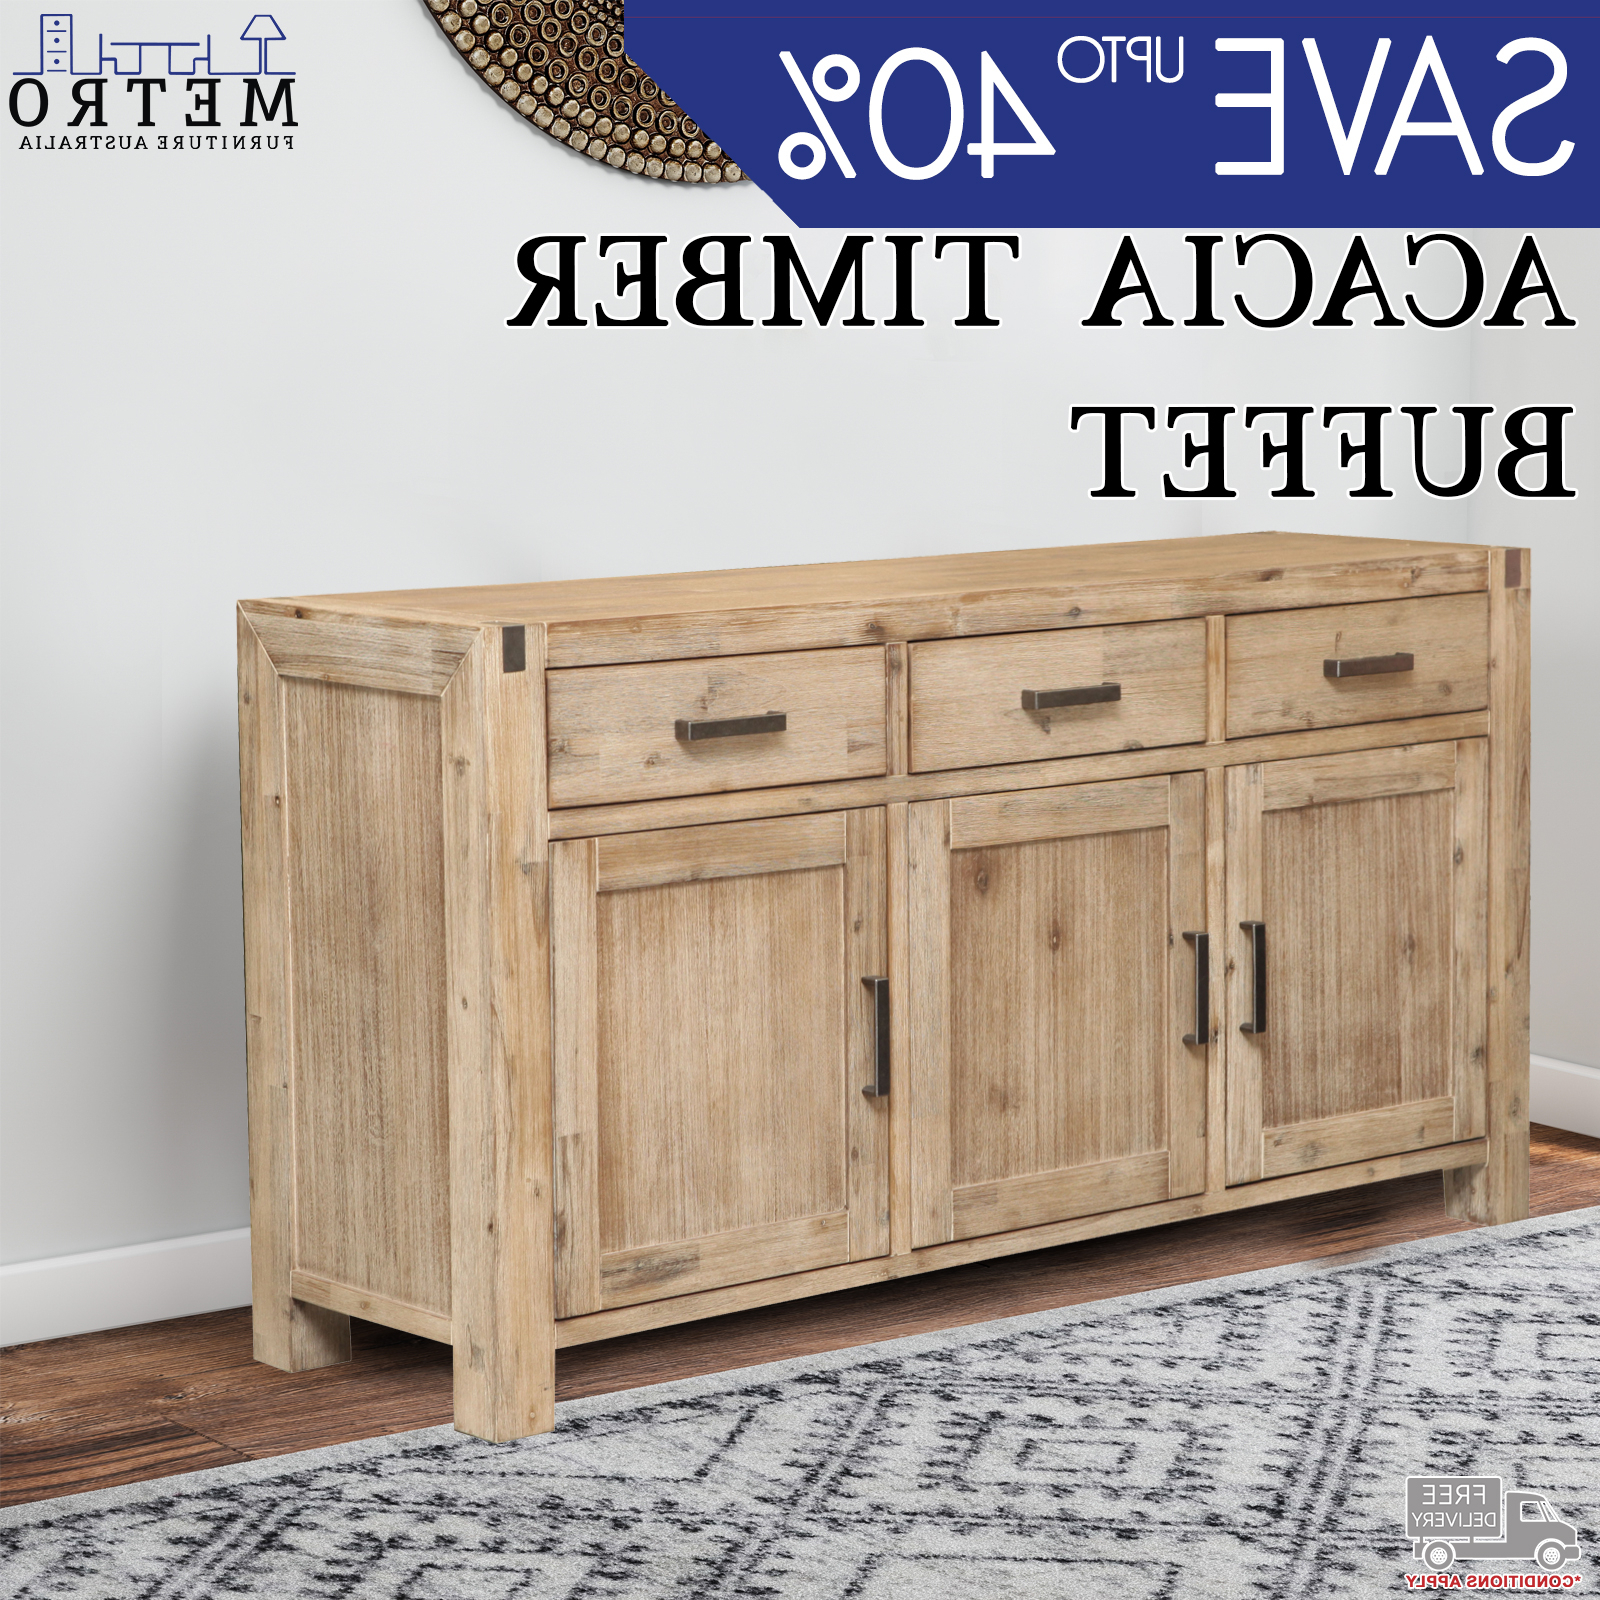 Details About High Quality 3 Drawer 3 Cabinet Storage Acacia Timber Buffet Sideboard Espresso Inside 3 Drawer Storage Buffets (View 2 of 20)